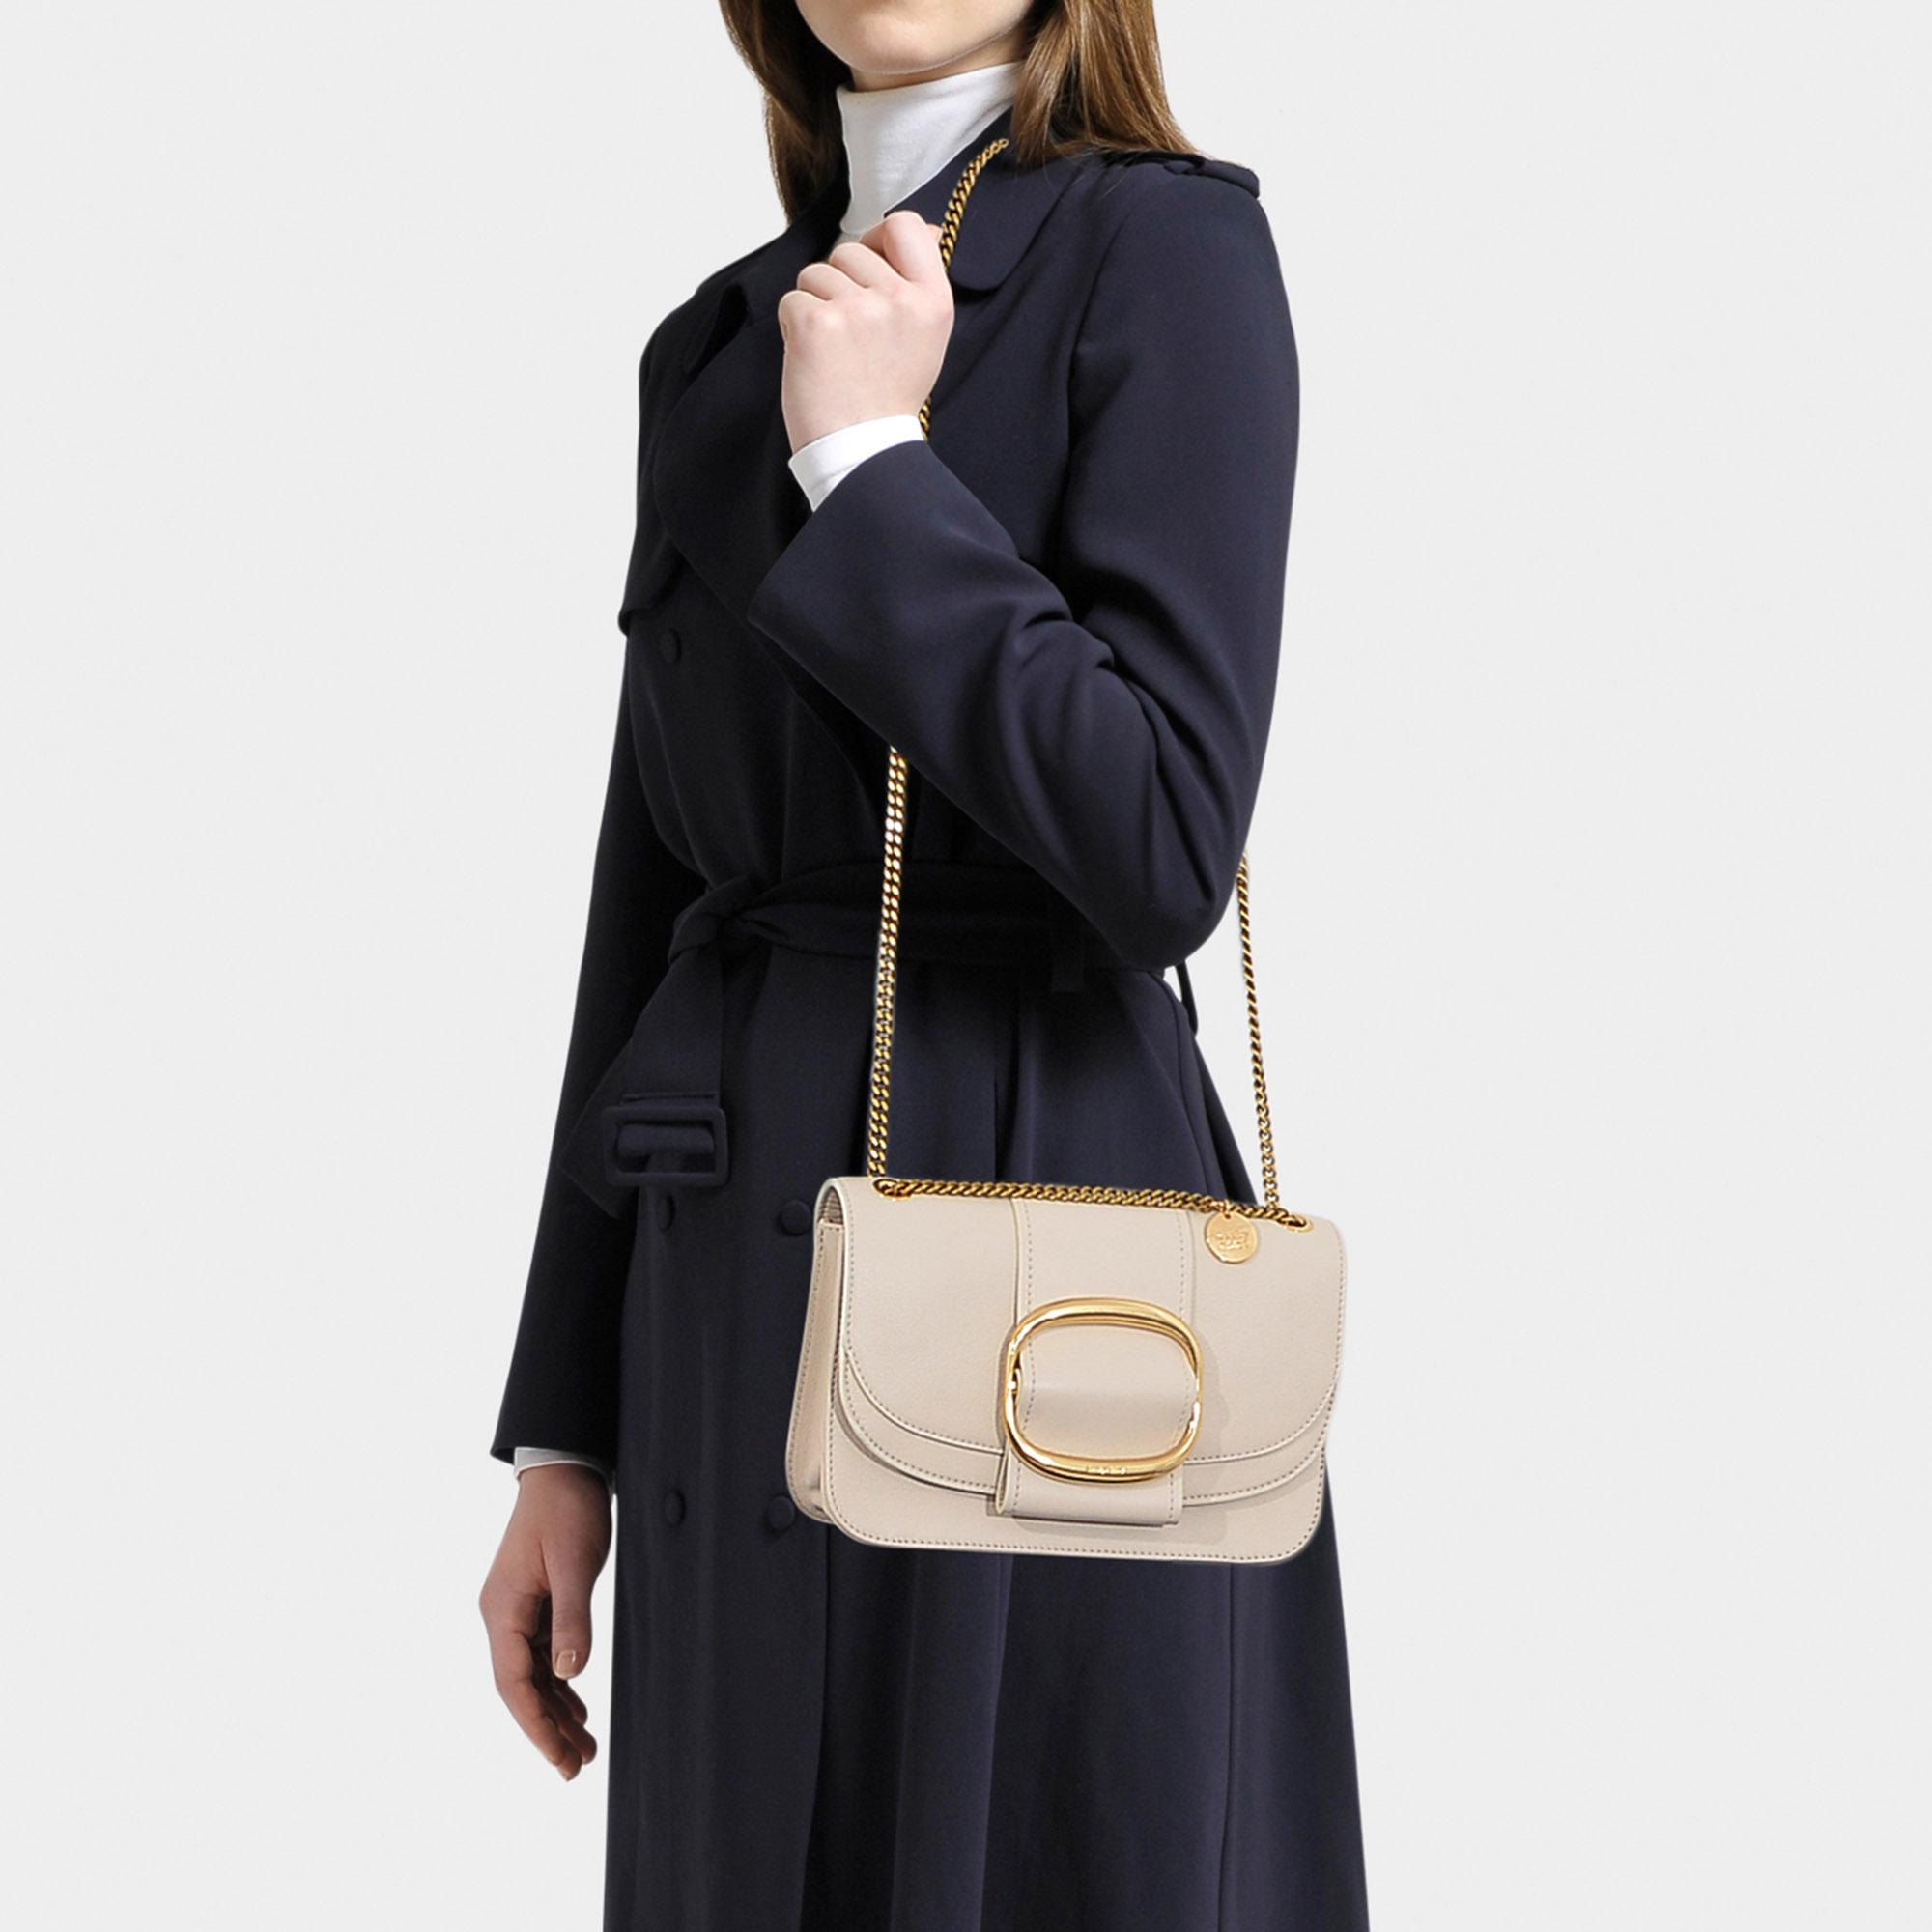 c9b49e6af9fa ... Hopper Crossbody Bag In Cement Beige Grained Leather - Lyst. View  fullscreen